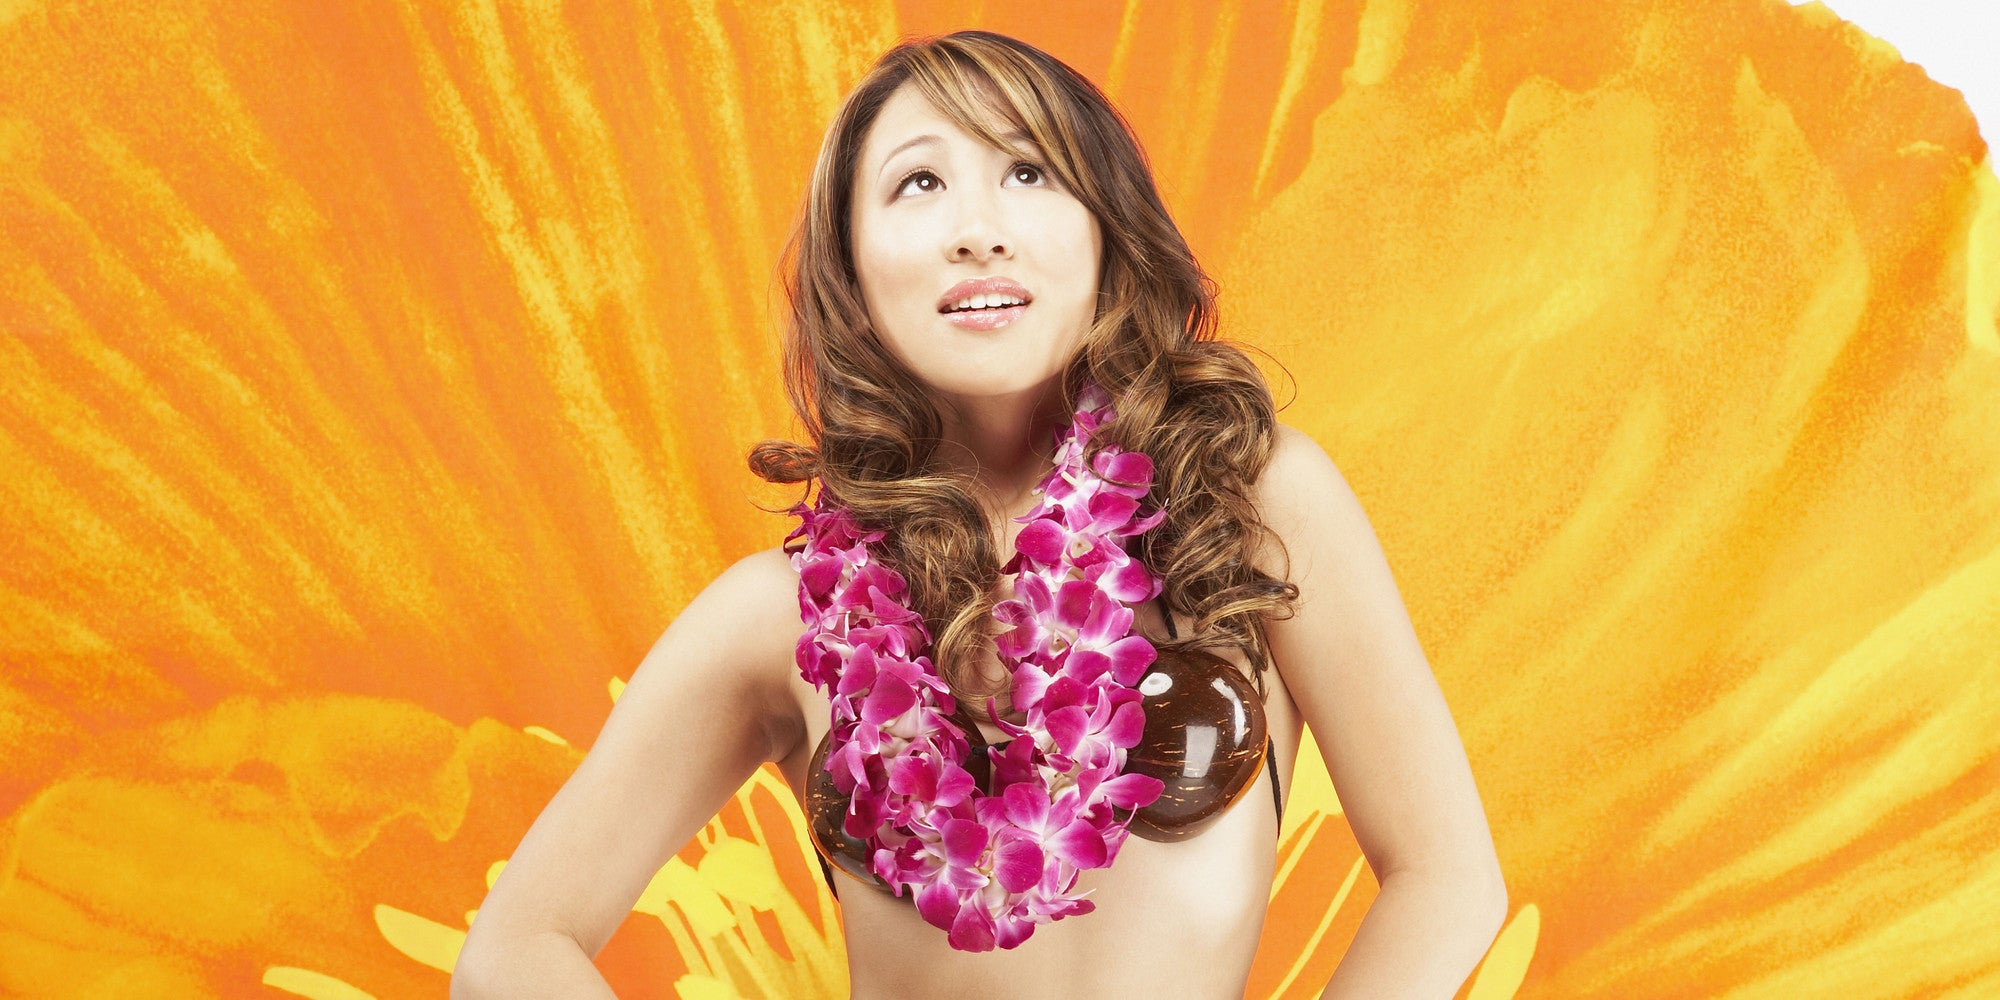 Orchid LEI can hula anywhere